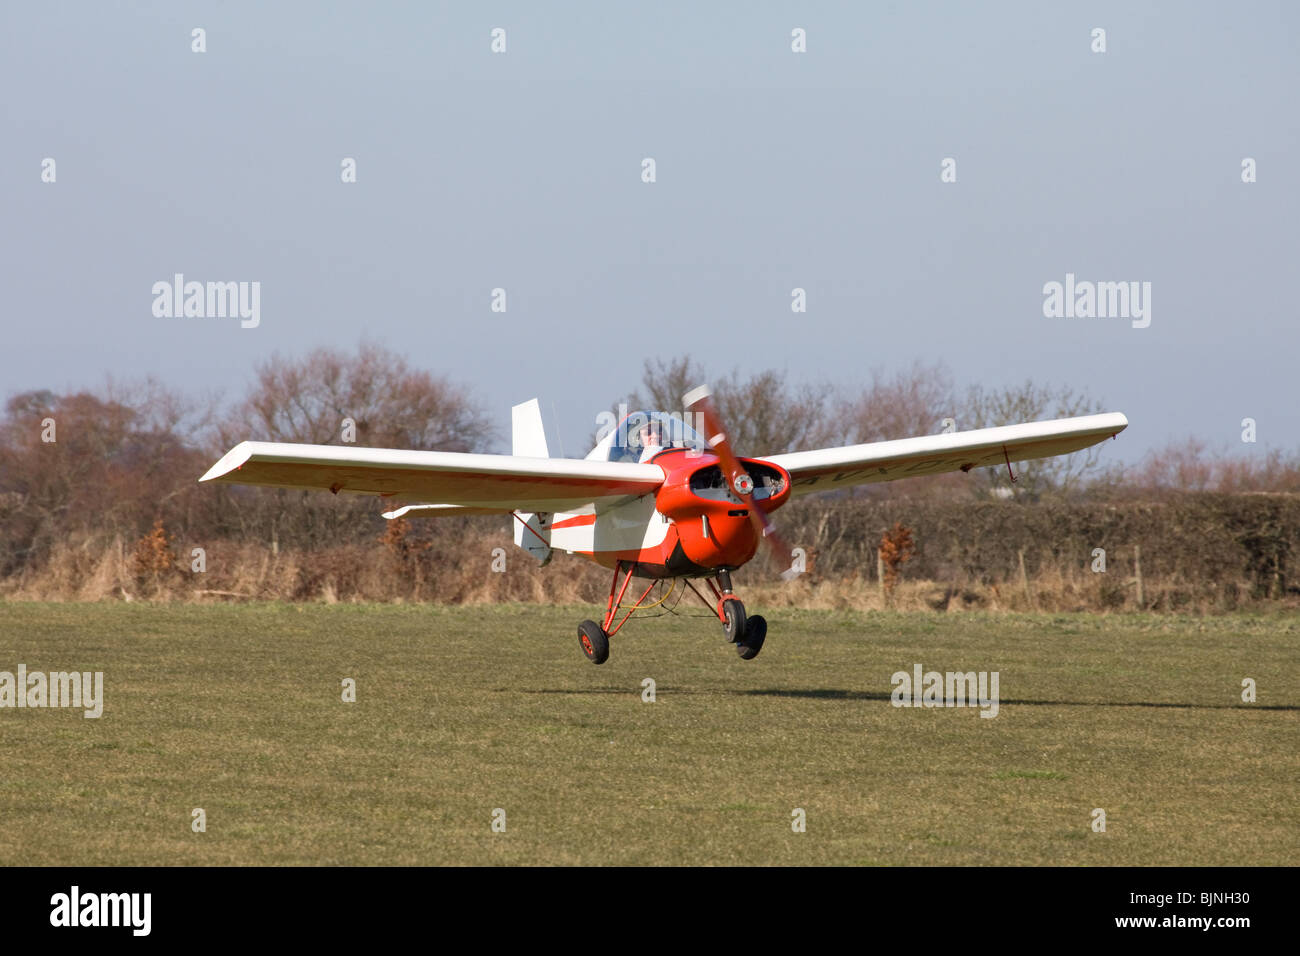 Tipsy T.66 R45 Series 3 Nipper in flight about to touchdown at Breighton Airfield - Stock Image